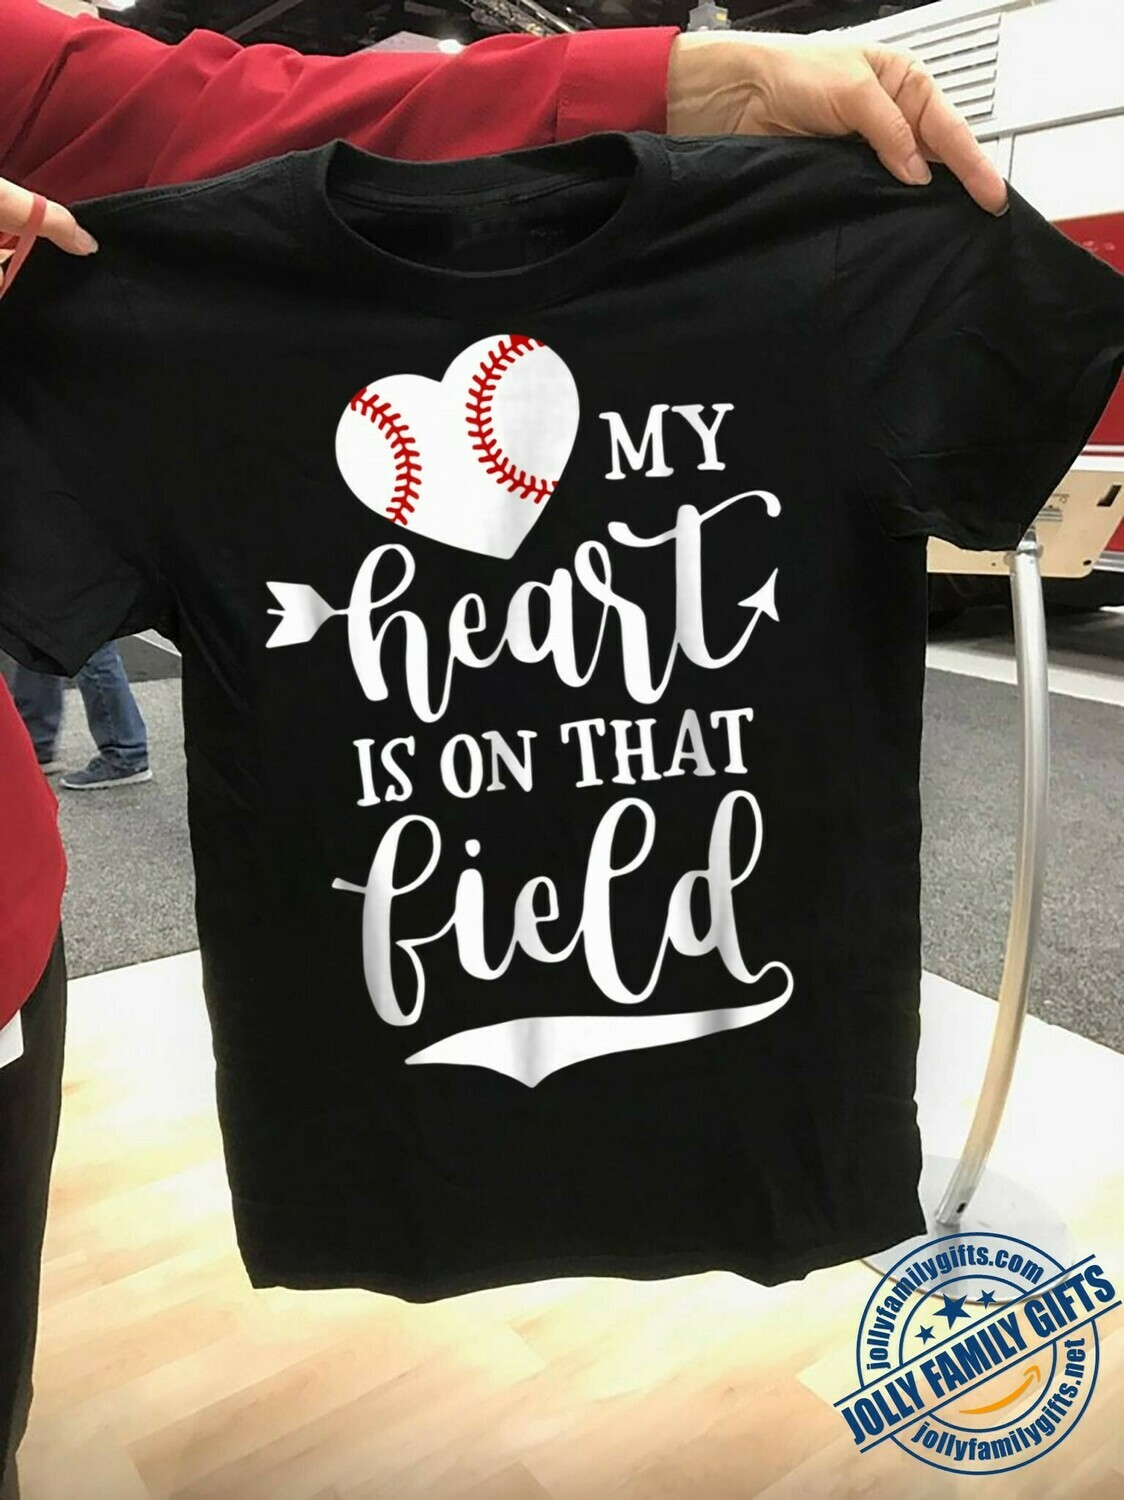 My Heart is on That Field Baseball Softball for softball lovers Player Men Women Unisex T-Shirt Hoodie Sweatshirt Sweater Plus Size for Ladies Women Men Kids Youth Gifts Tee Jolly Family Gifts